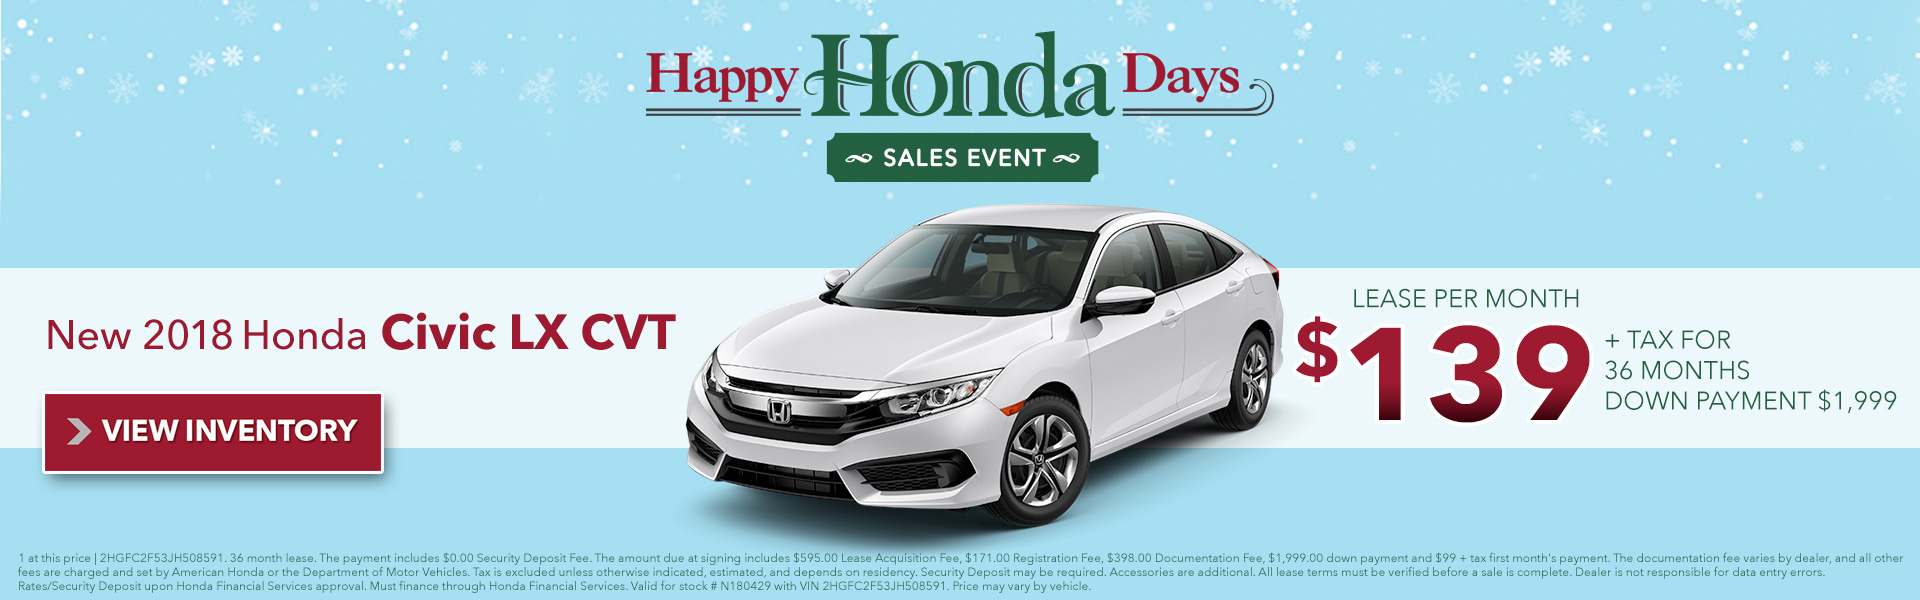 Lease Specials. 2018 Honda Civic LX